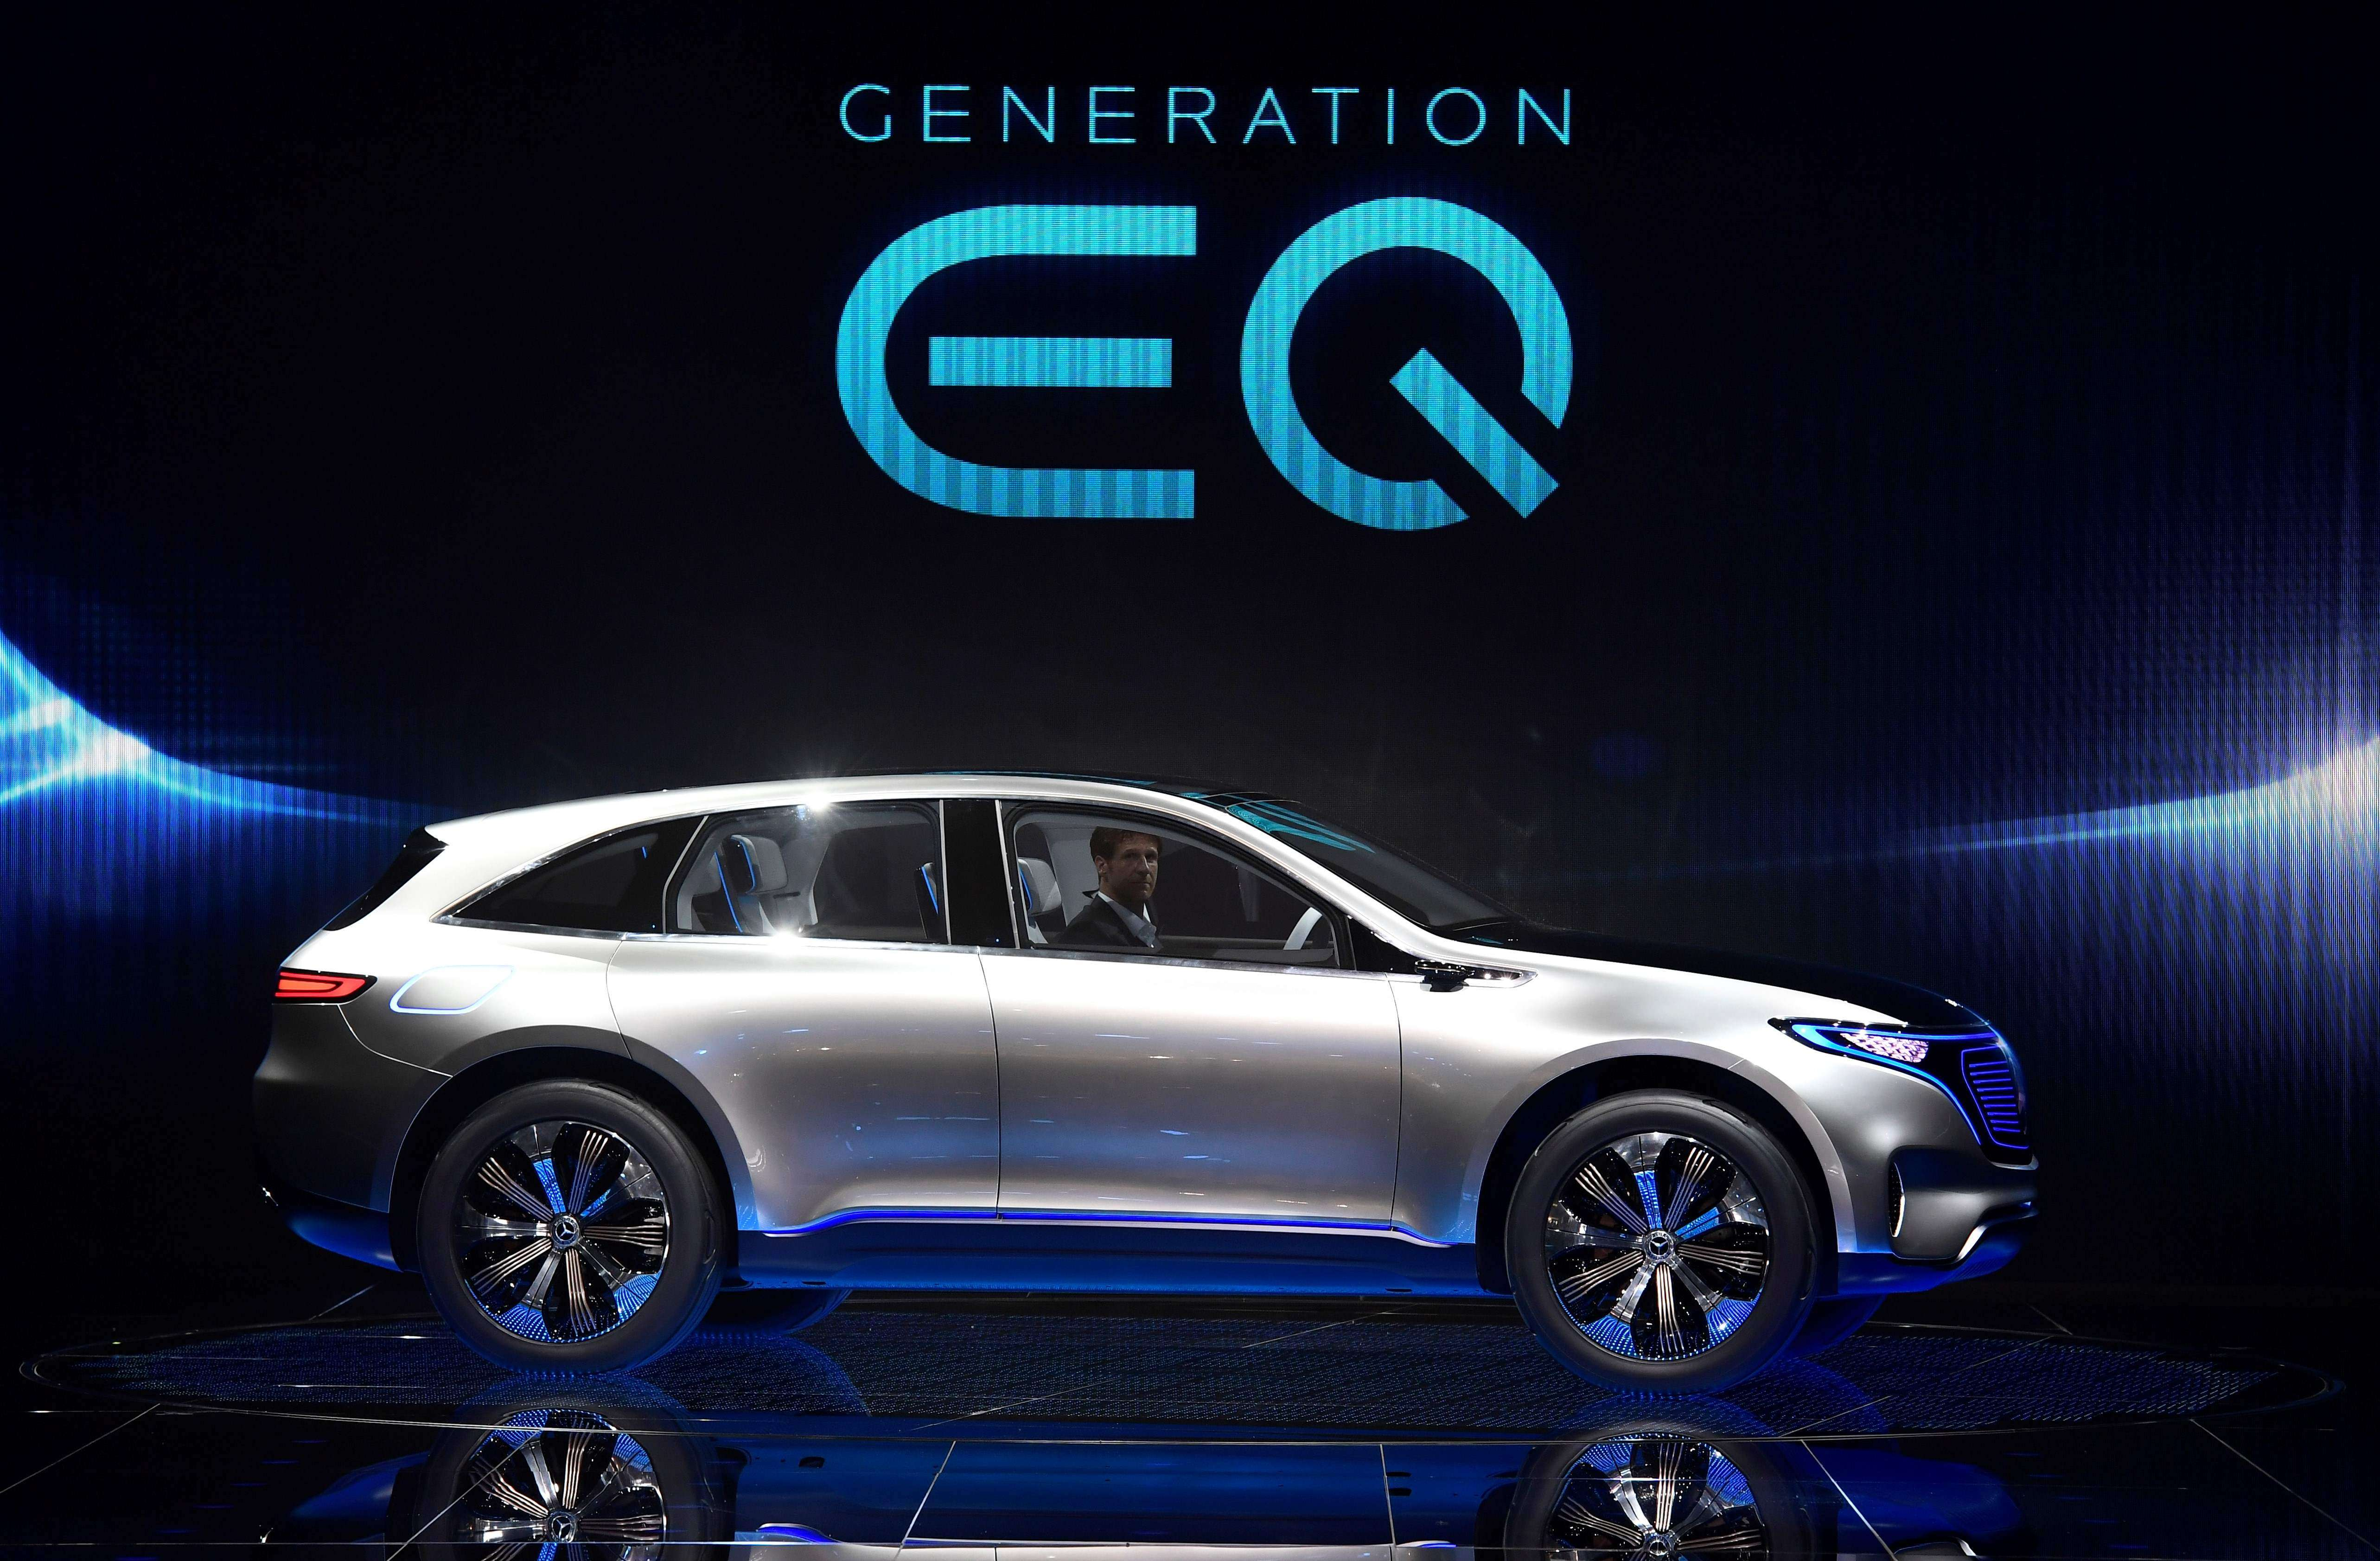 Mercedes' 'Tesla killer' electric SUV coming in 2019